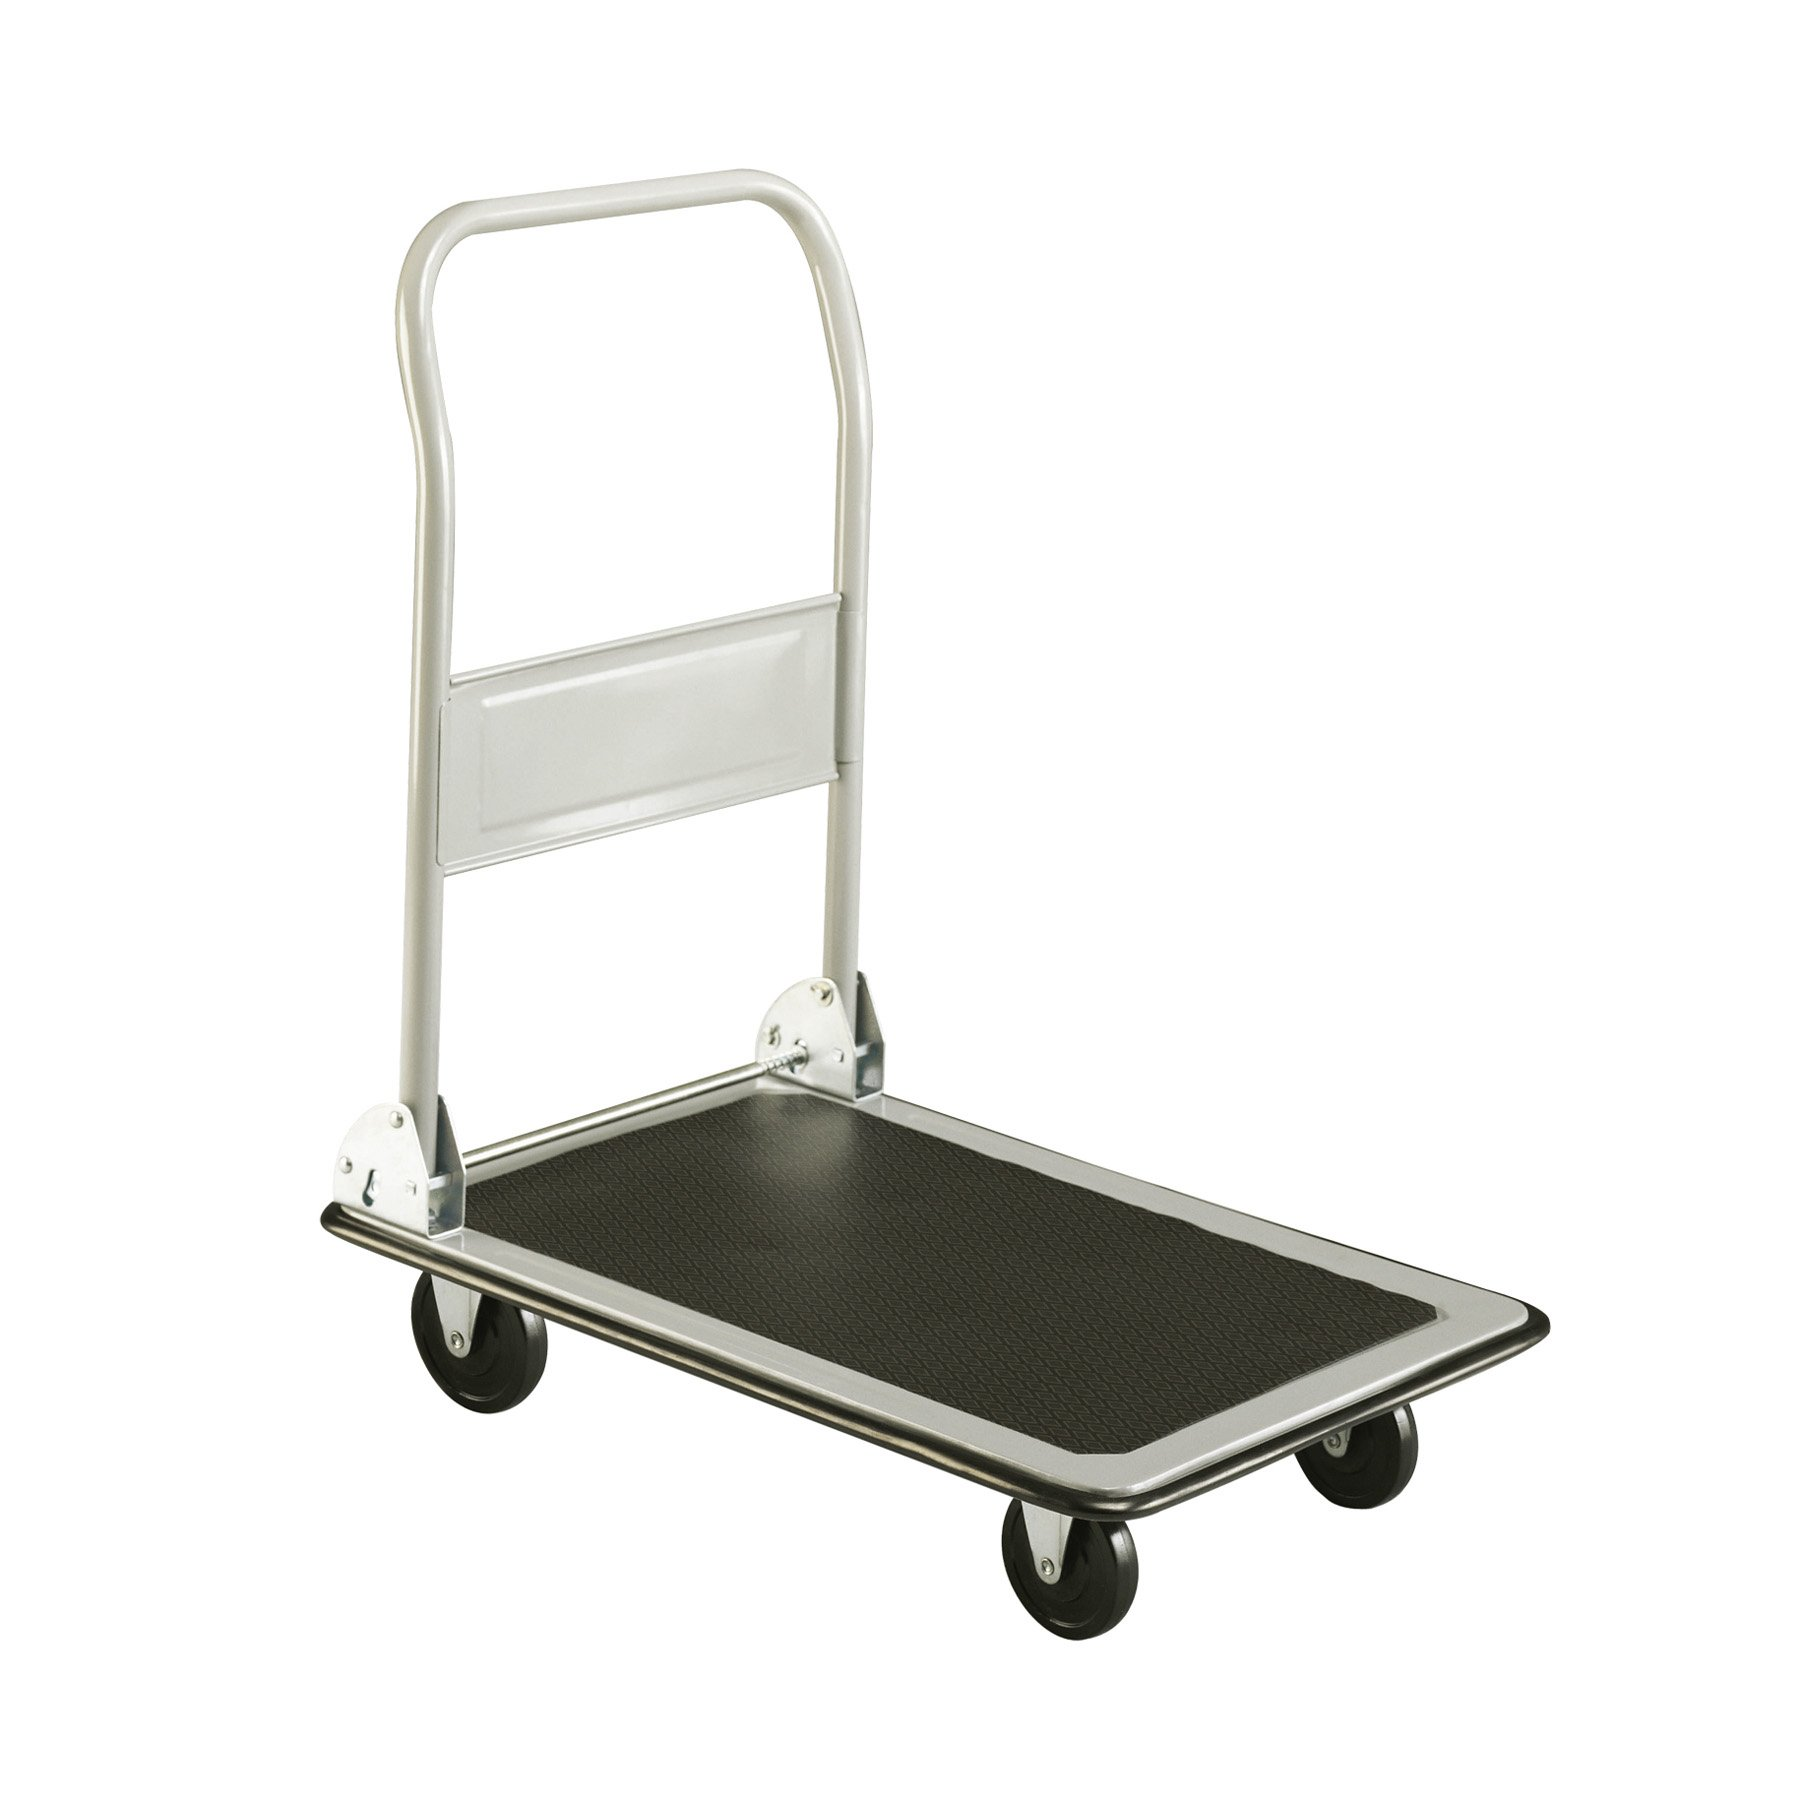 Safco Products 4063 Tuff Truck Large Platform Utility Hand Truck, Gray